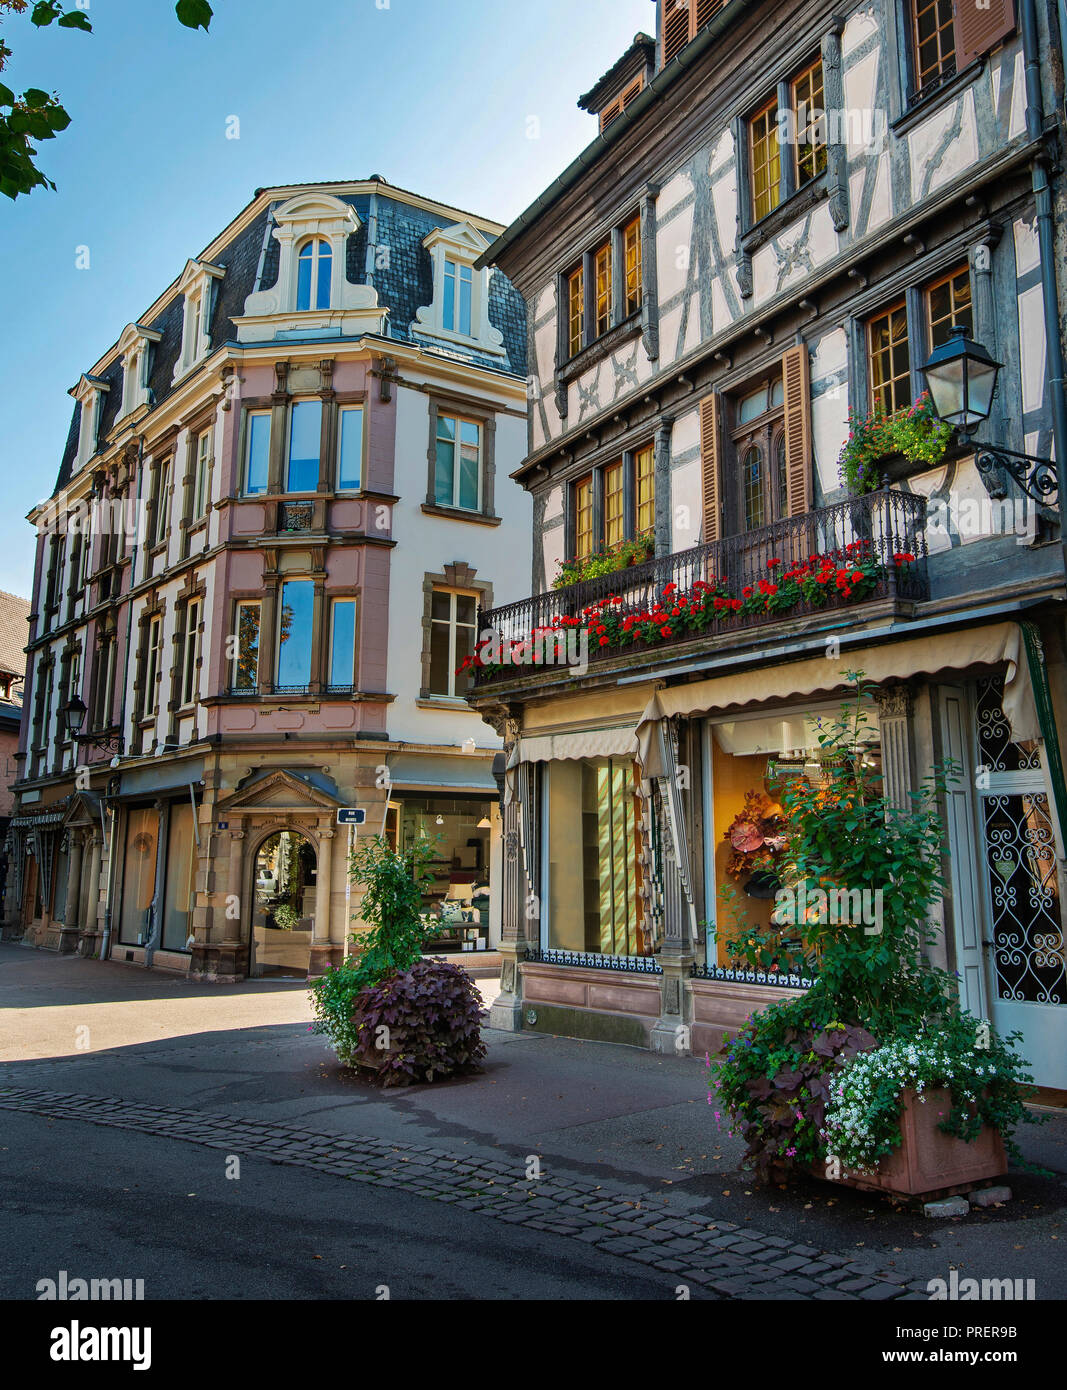 Half-timbered buildings on Streets of Colmar, Alsace, France - Stock Image